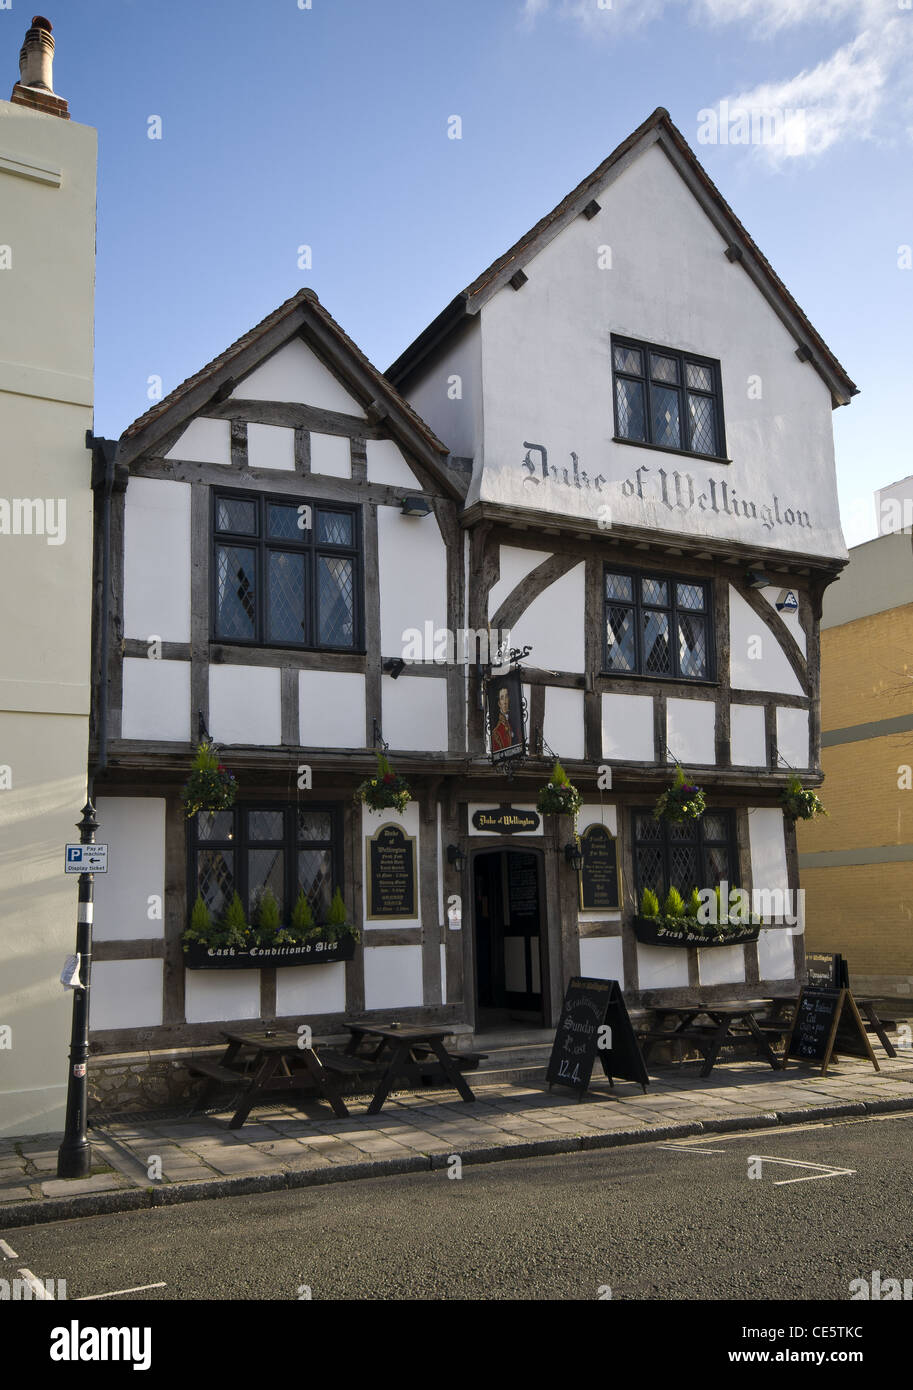 The Duke of Wellington Public House, Southampton, England, UK - Stock Image